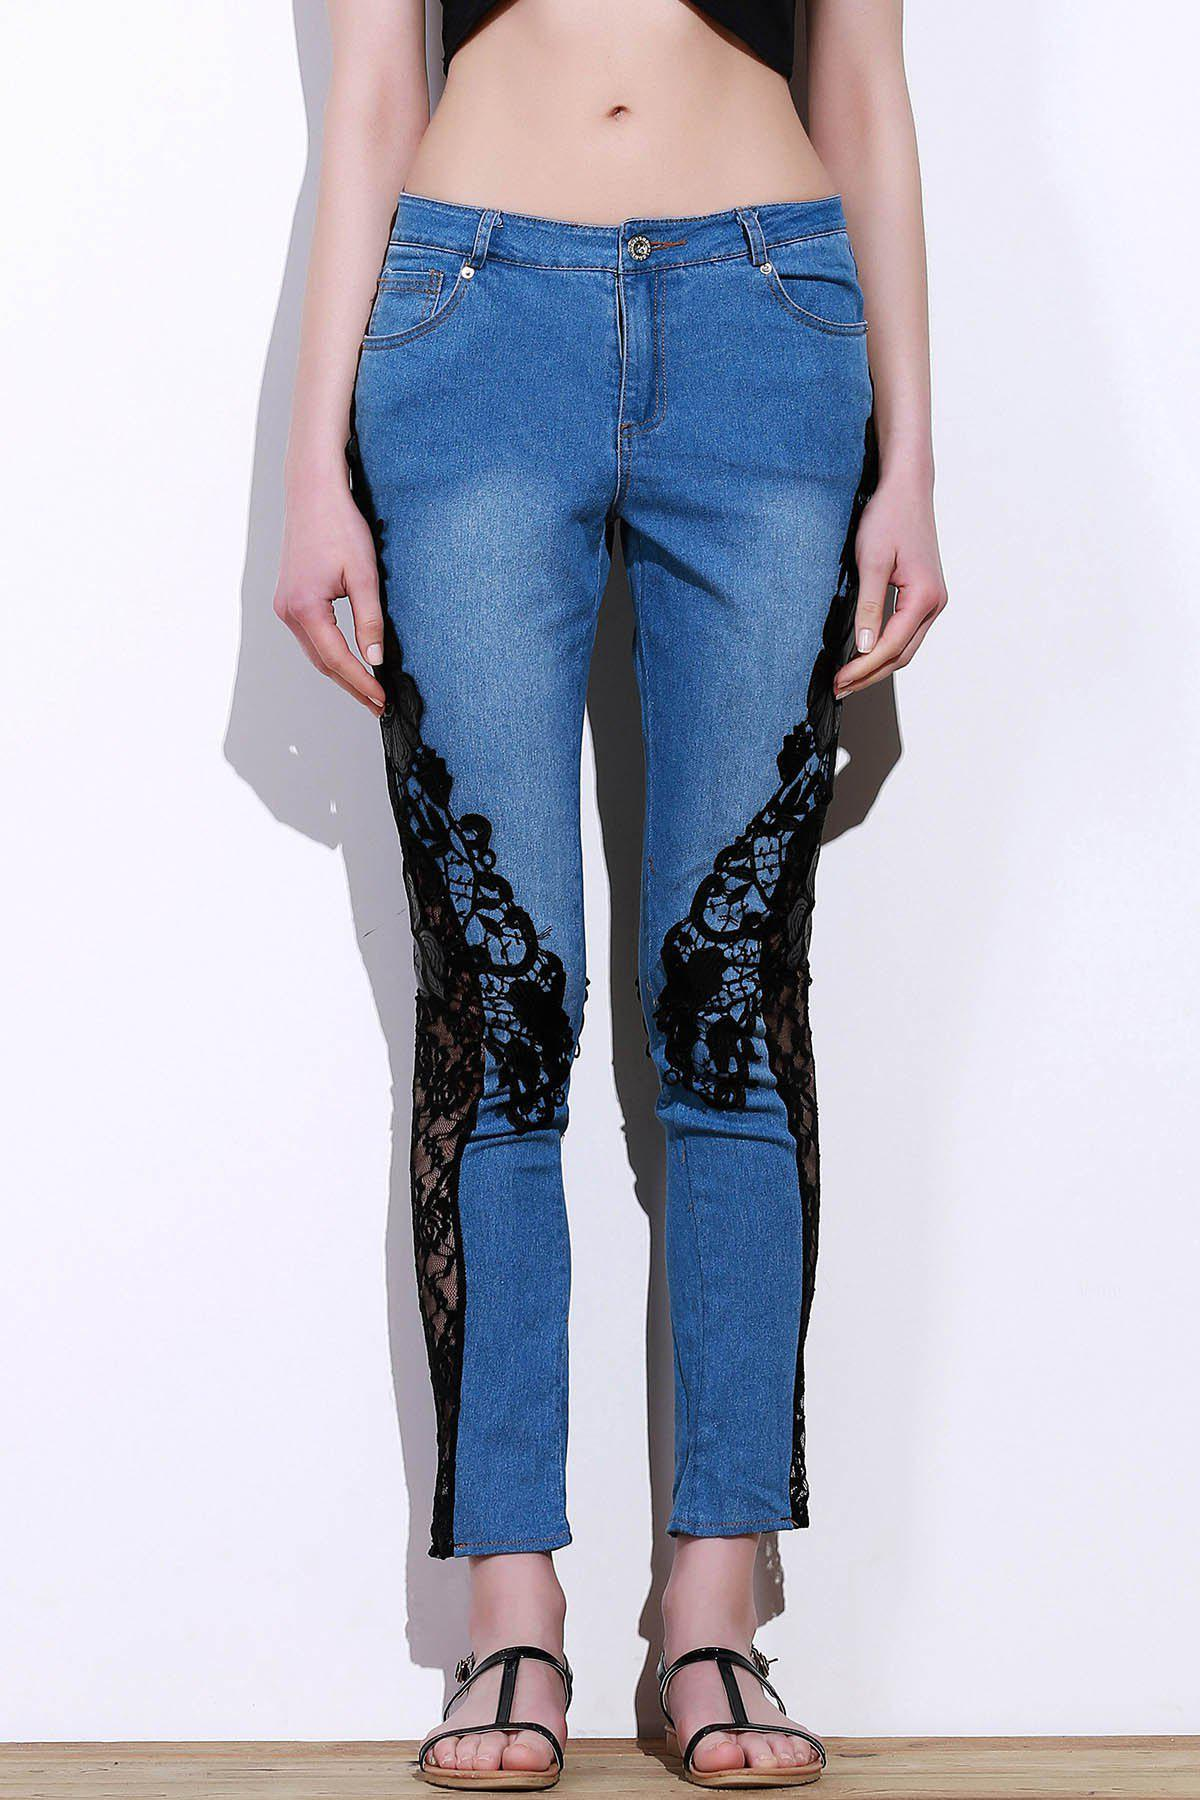 Stylish Mid-Waisted See-Through Lace Embellished Women's Jeans - BLUE/BLACK M